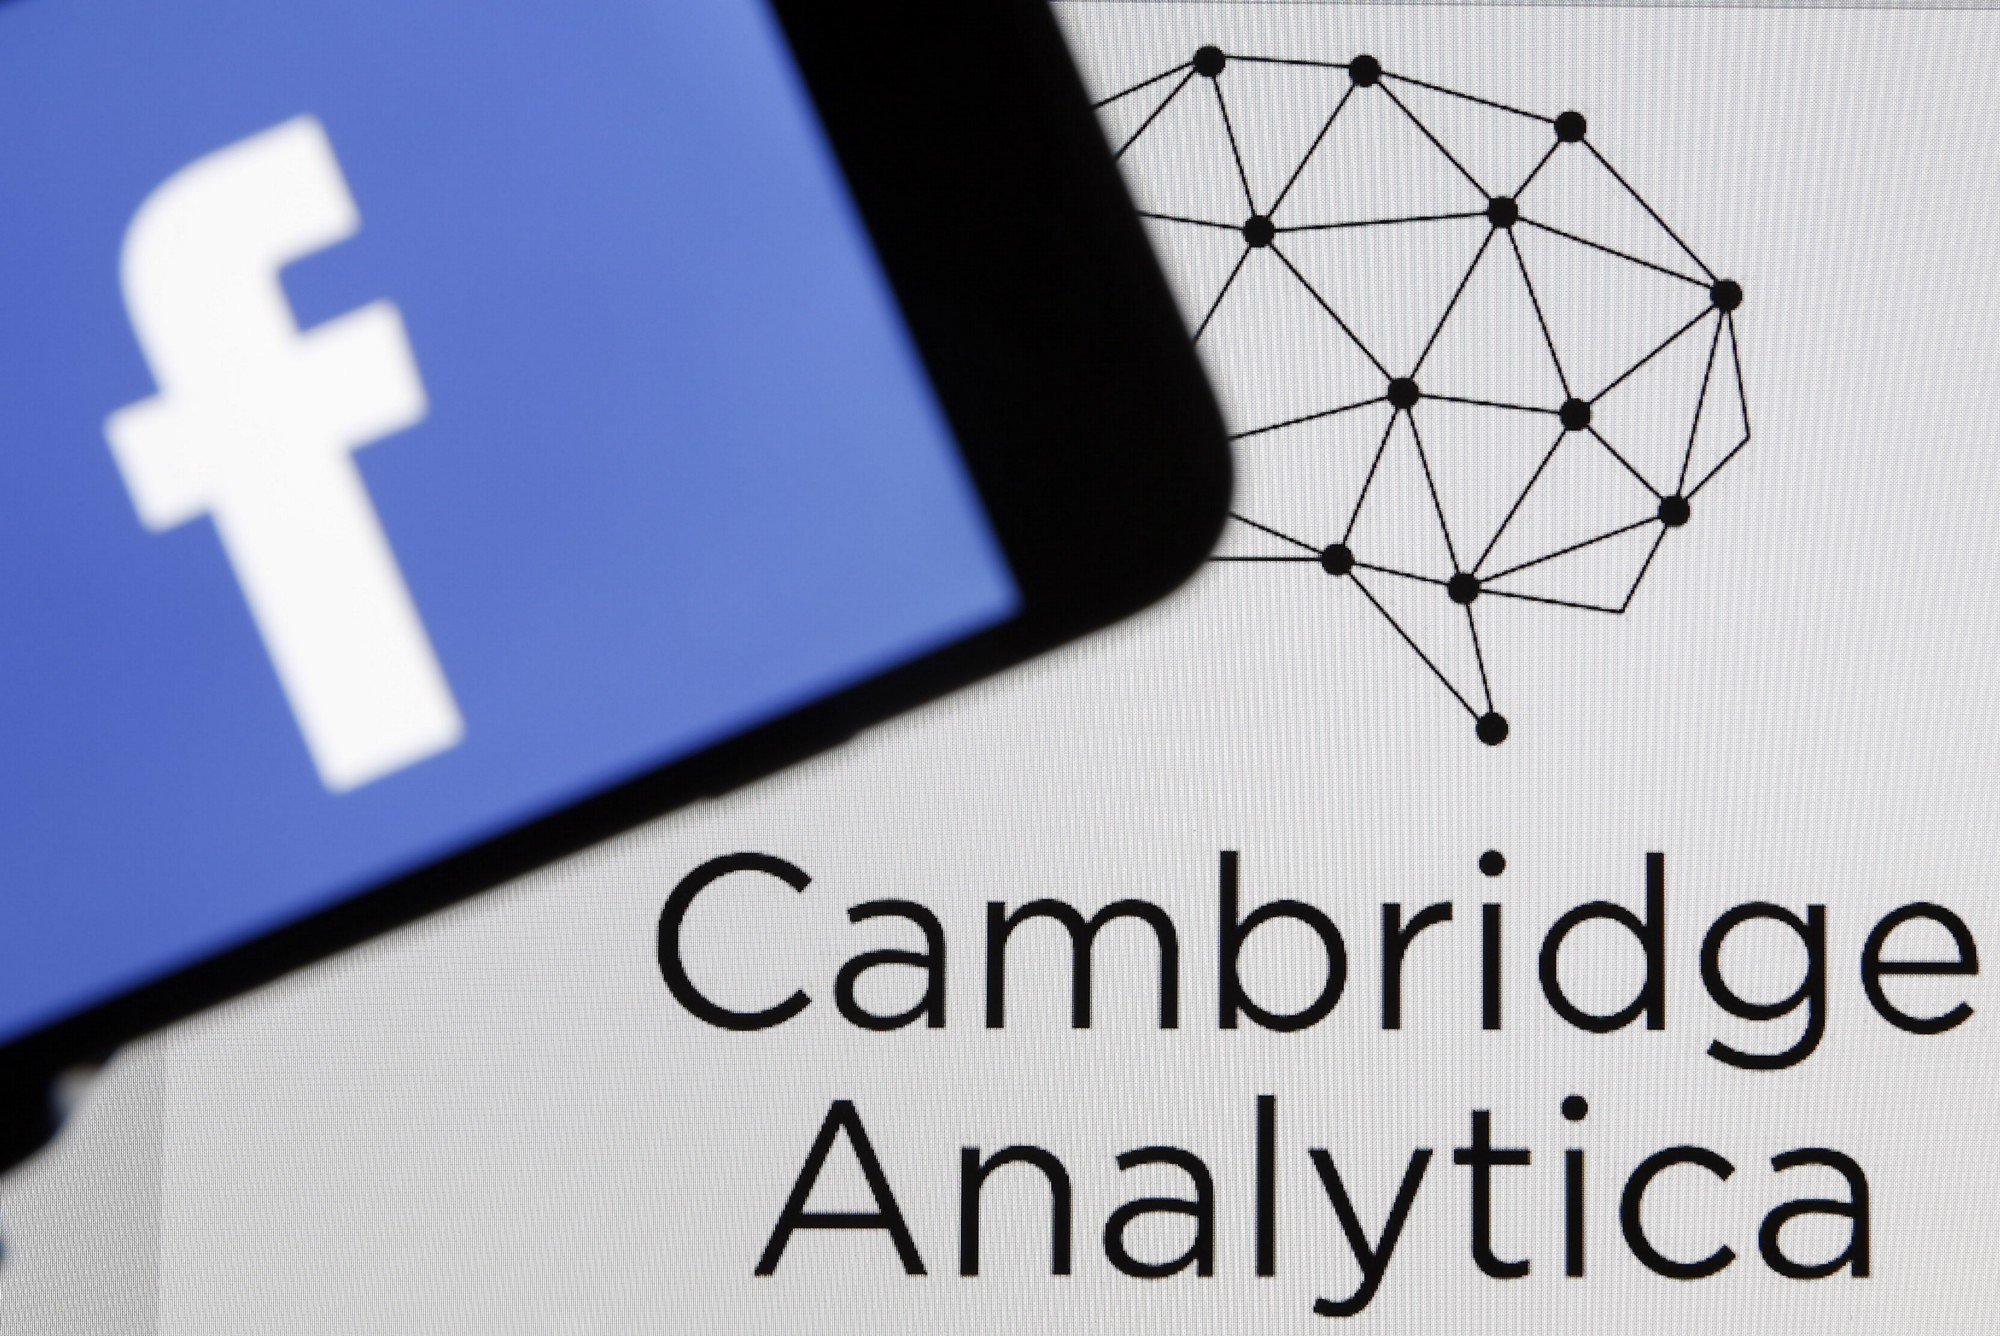 Researcher at the heart of Cambridge Analytica scandal calls Facebooks account a fabrication